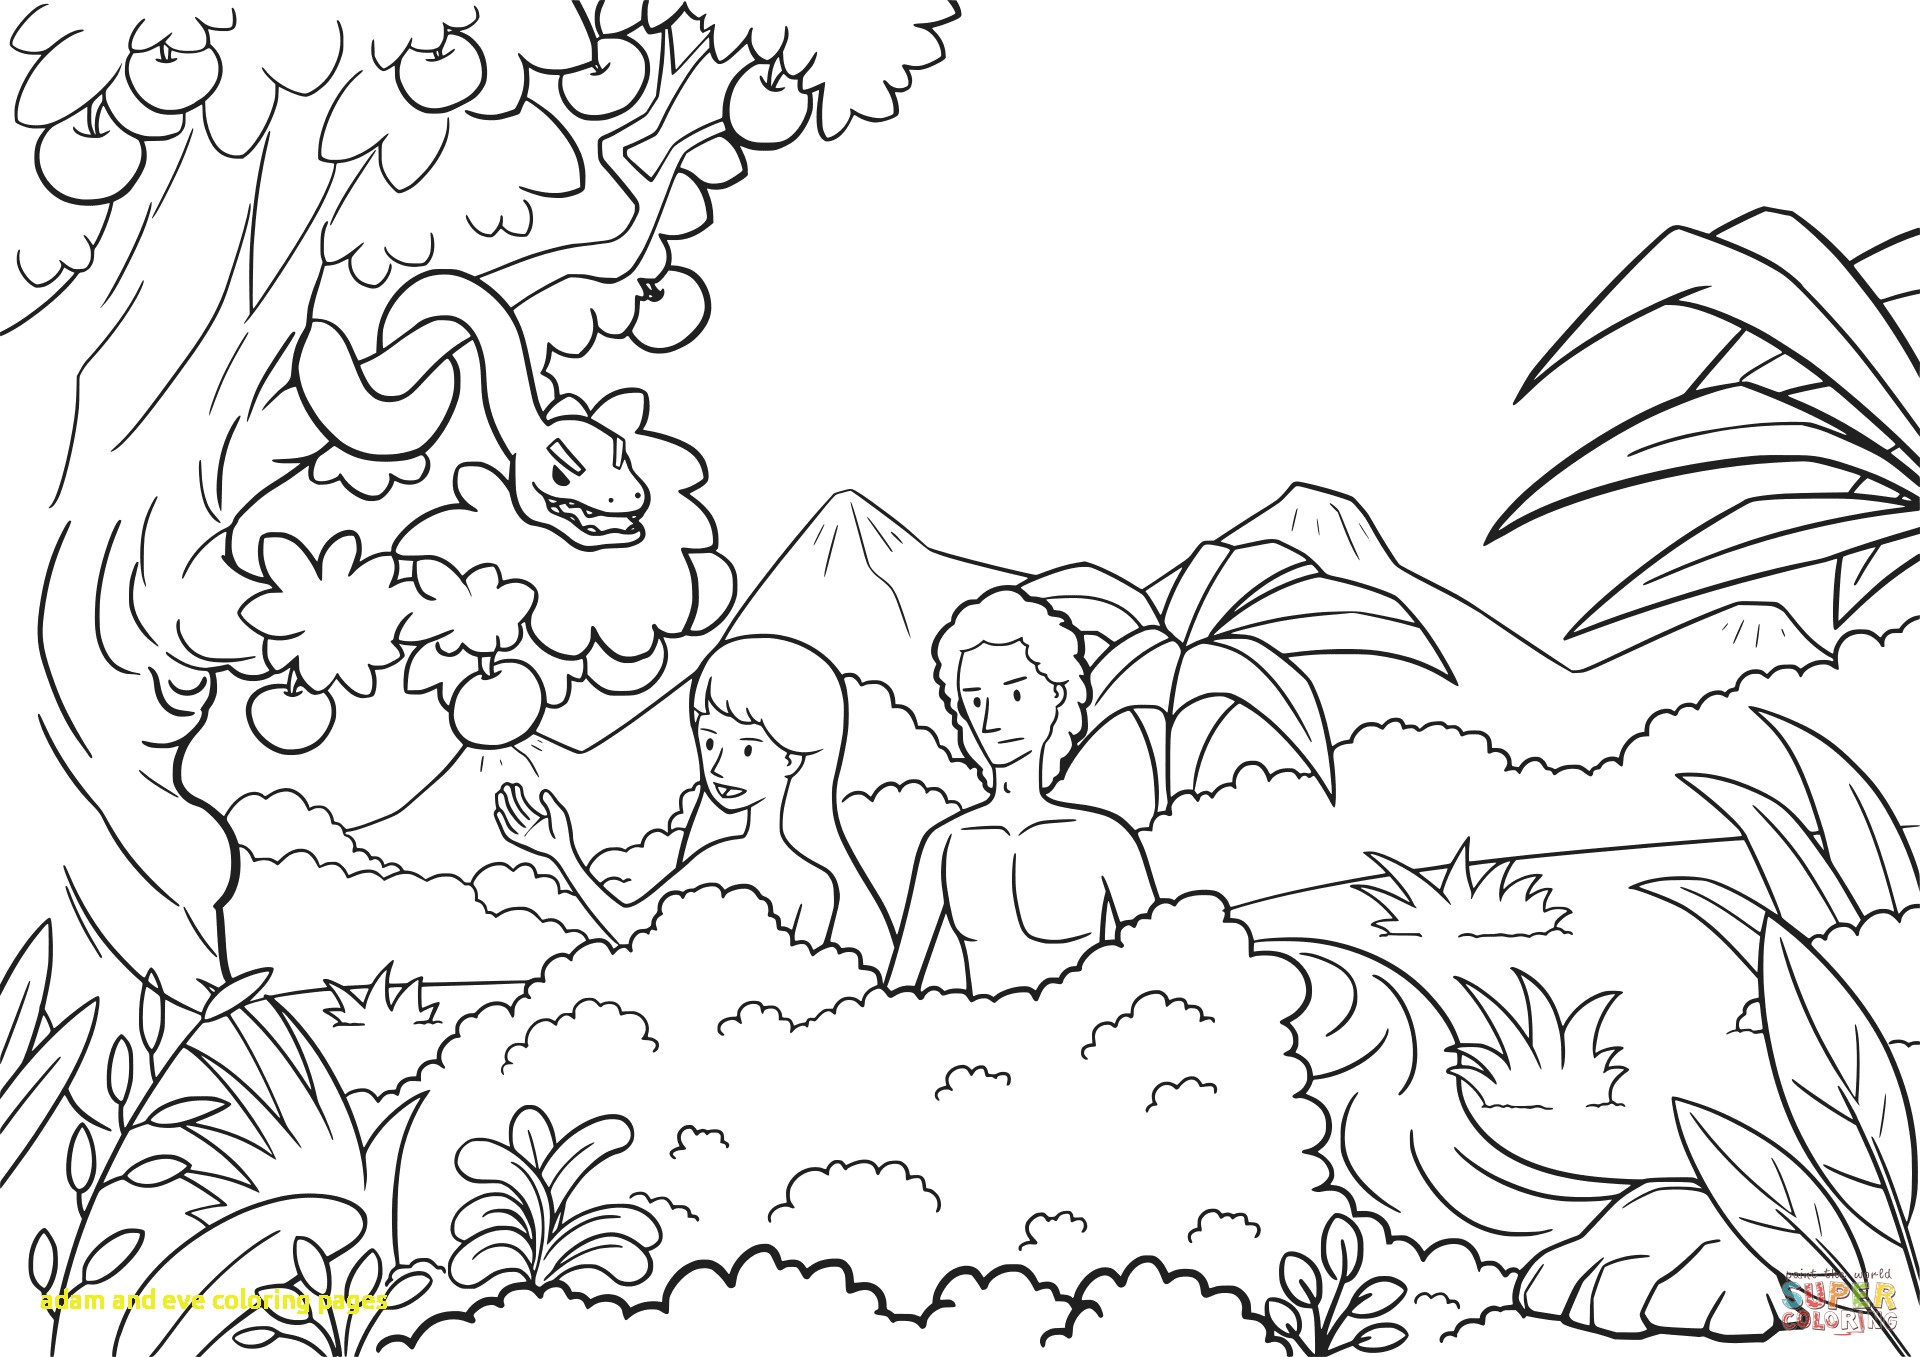 adam and eve coloring page bible coloring page adam and eve exiled from eden and adam page coloring eve